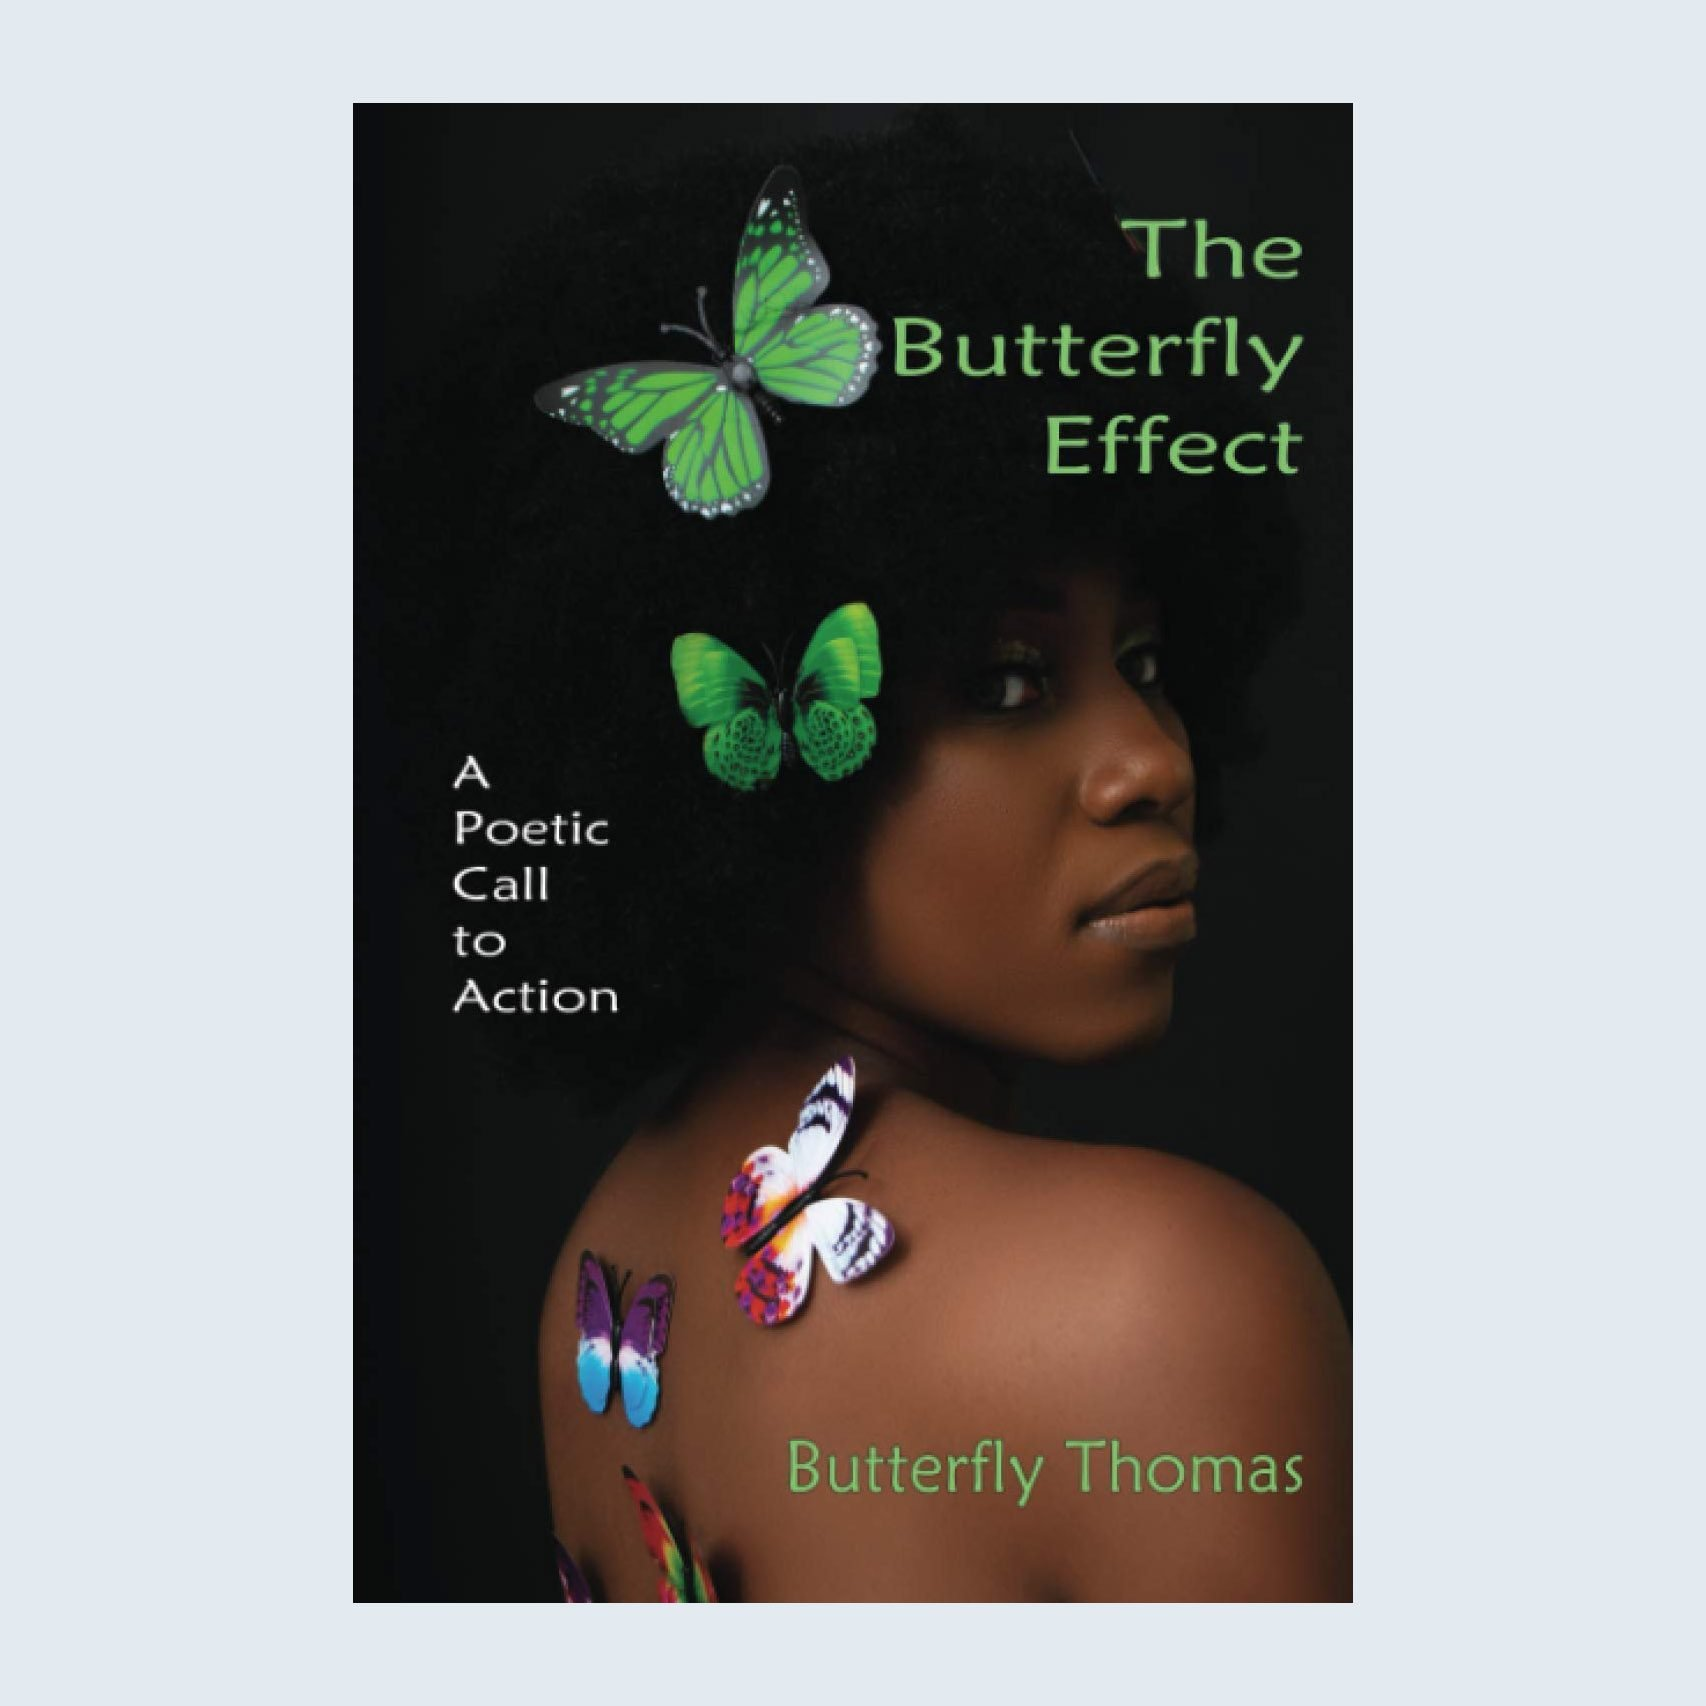 The Butterfly Effect by Butterfly Thomas